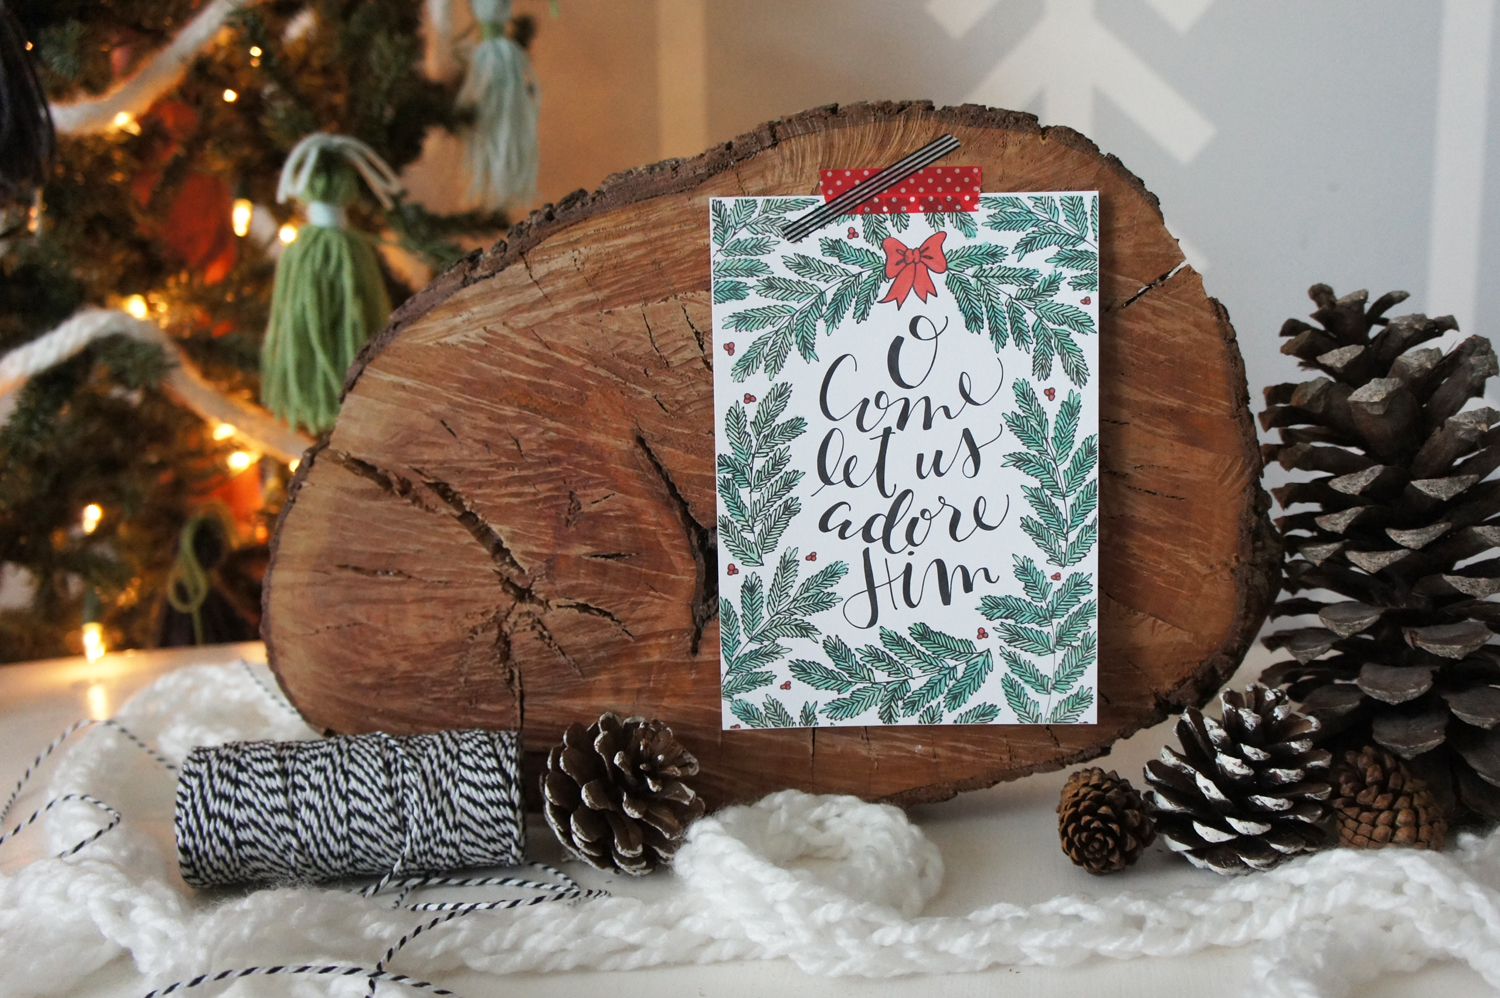 """Click the image to download the """"O Come Let Us Adore Him"""" PDF printable. This file includes both the 5x7 AND 8x10 sizes for you to print and enjoy! Merry Christmas!!"""